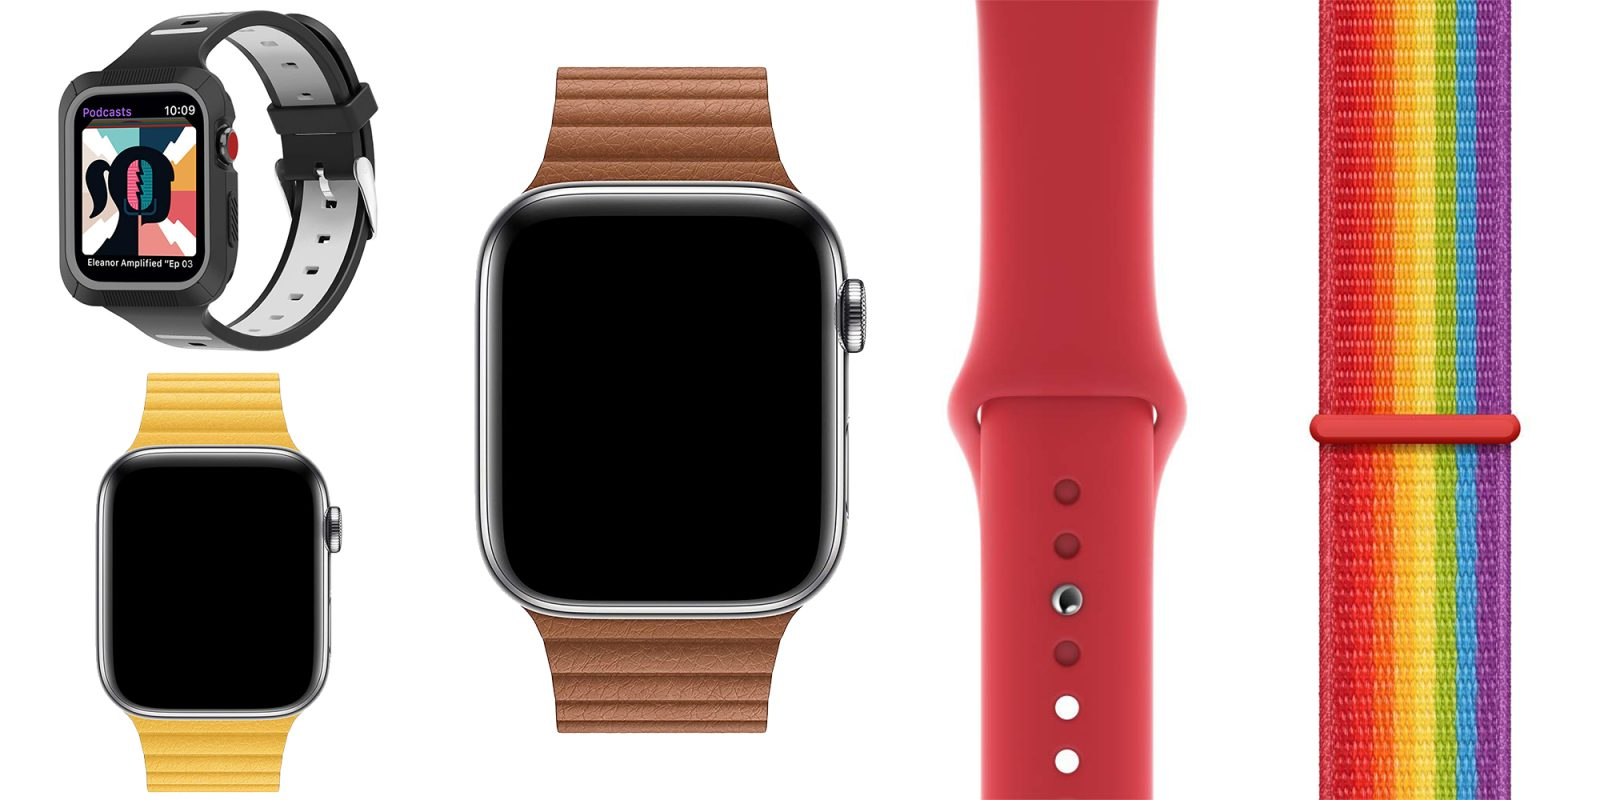 Apple Watch band deals from $5: Official Leather Loop now $99, sport straps, more